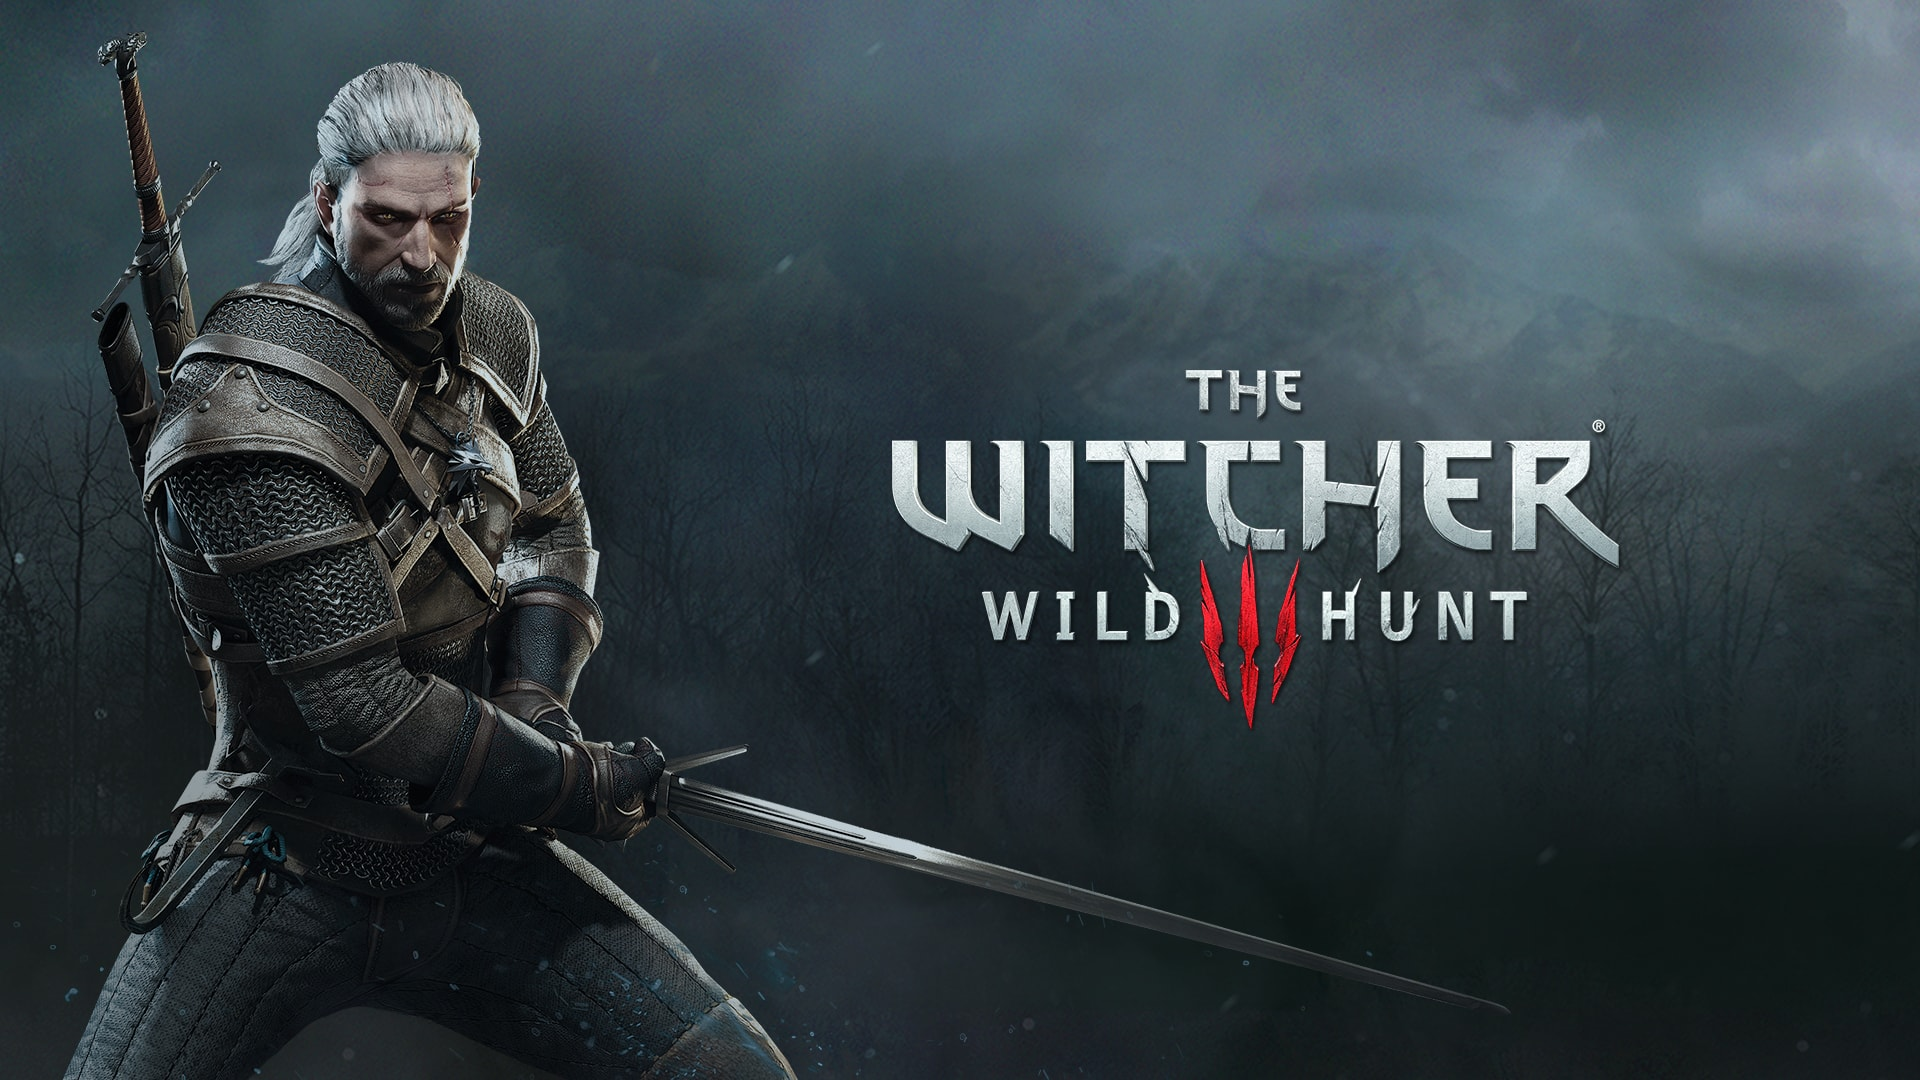 the witcher 3 : wild hunt hd wallpapers 1920 x 1080 – gtxhdgamer